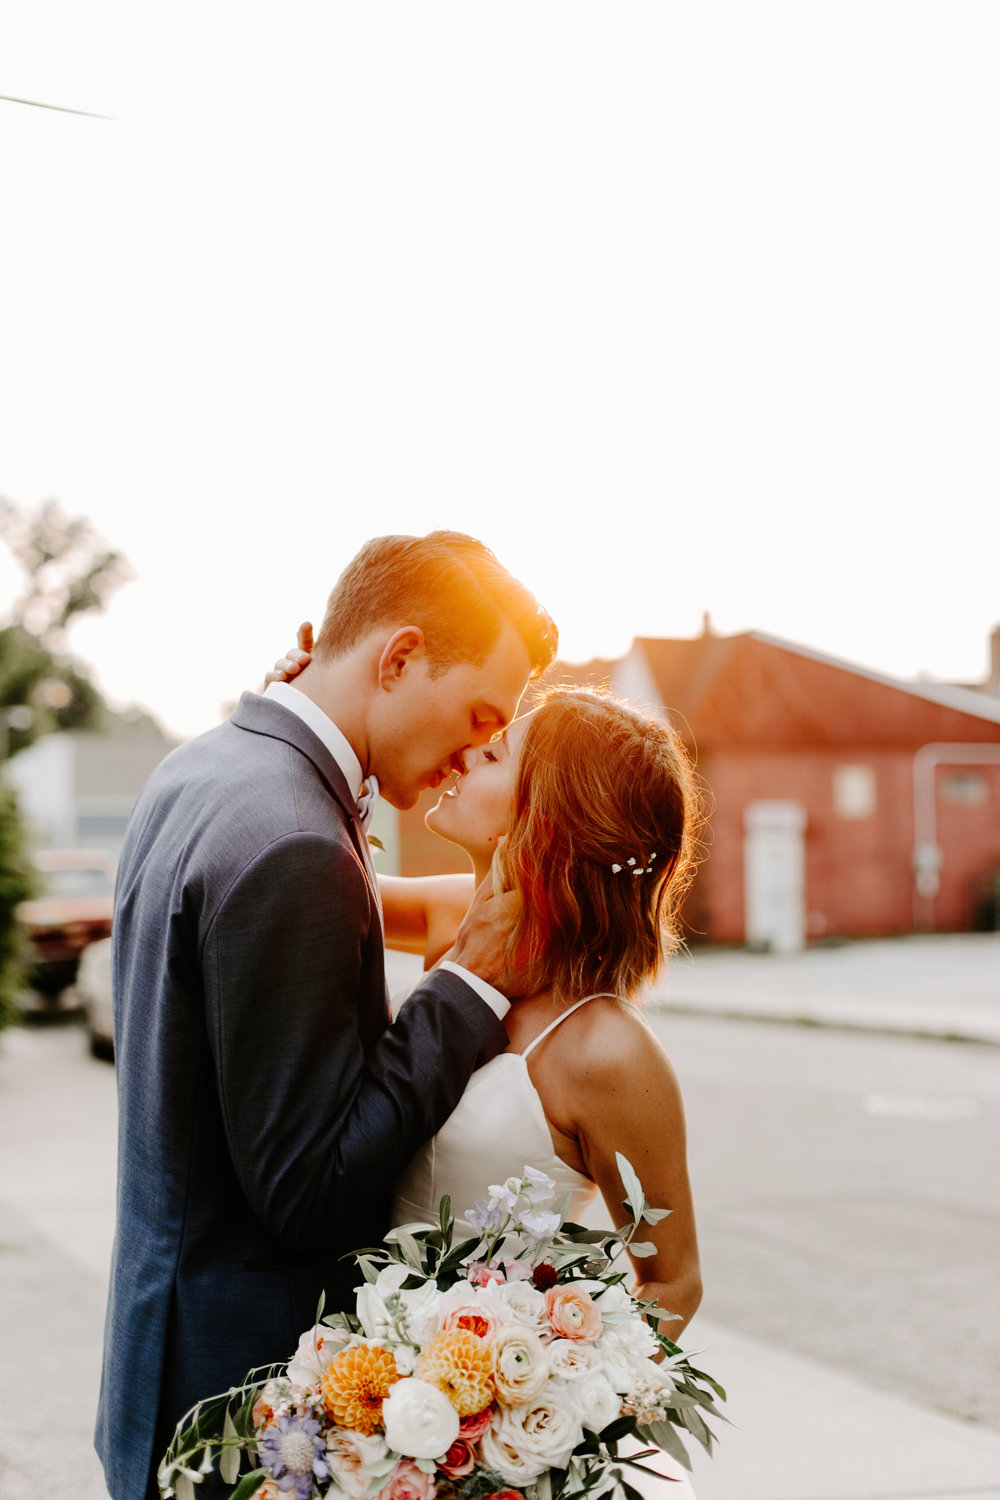 Claire and James Indianapolis Wedding The Tube Factory Emily Elyse Wehner Photography LLC-628.jpg